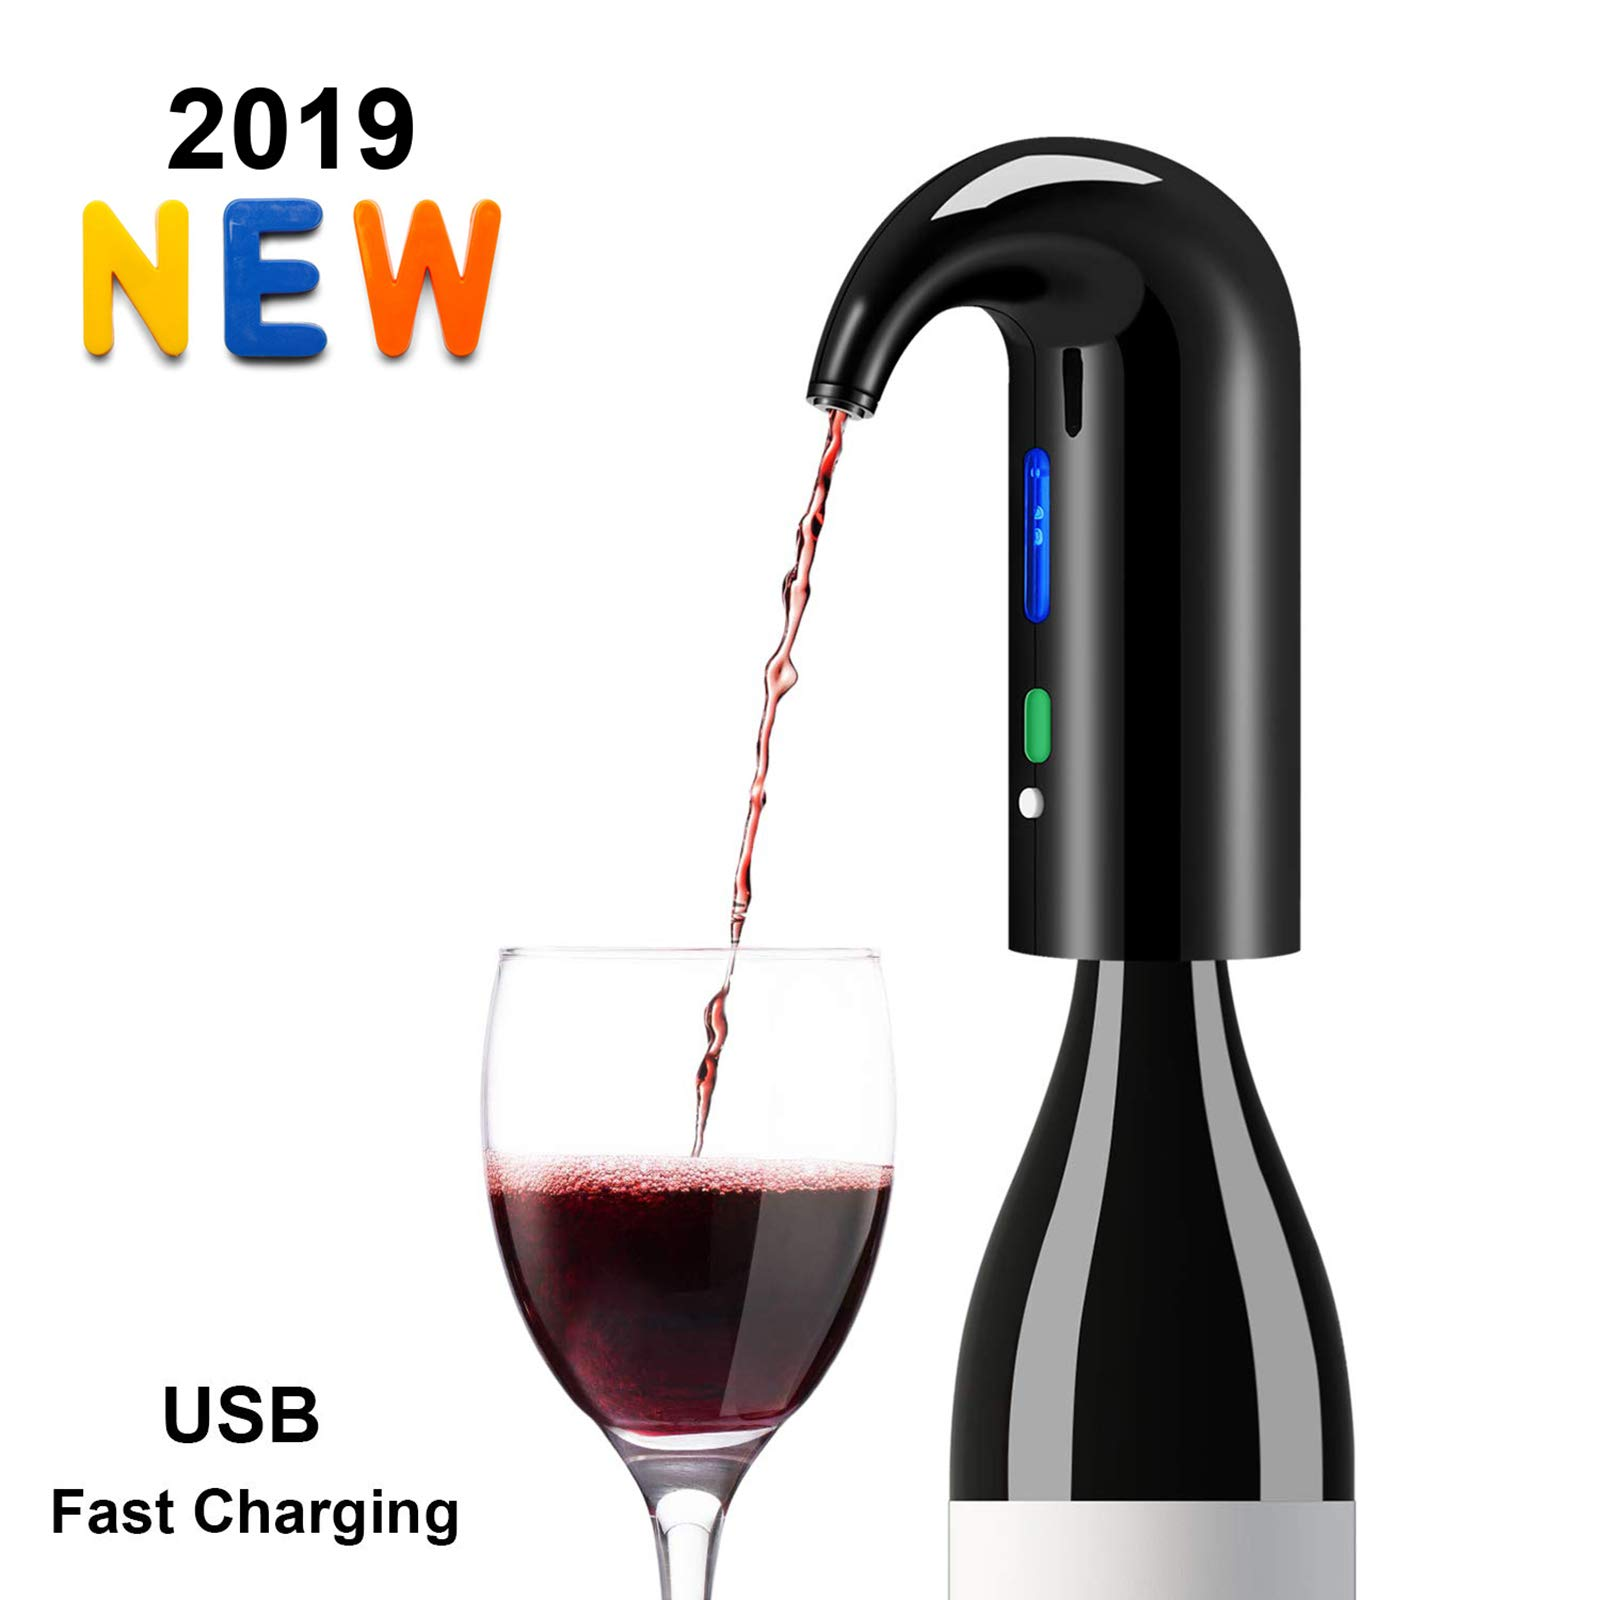 Wine Aerator Electric Wine Decanter Best Sellers One Touch Red -White Wine Accessories Aeration Work with Wine Opener for Beginner Enthusiast - Spout Pourer - wine preserver by JIFAR